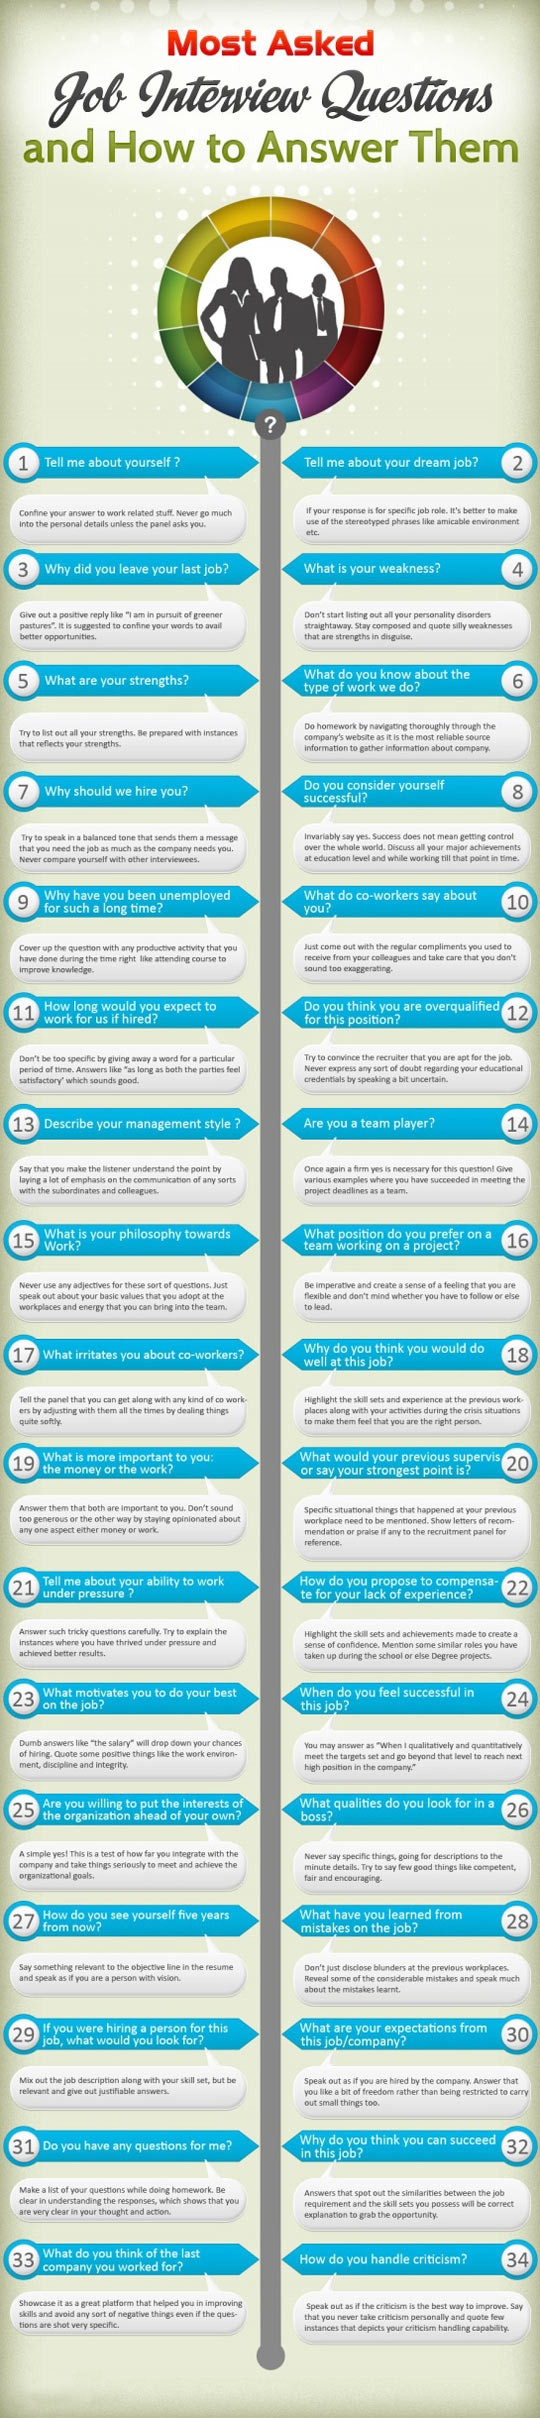 Interview questions and answers | Education | Pinterest | Mi amor ...